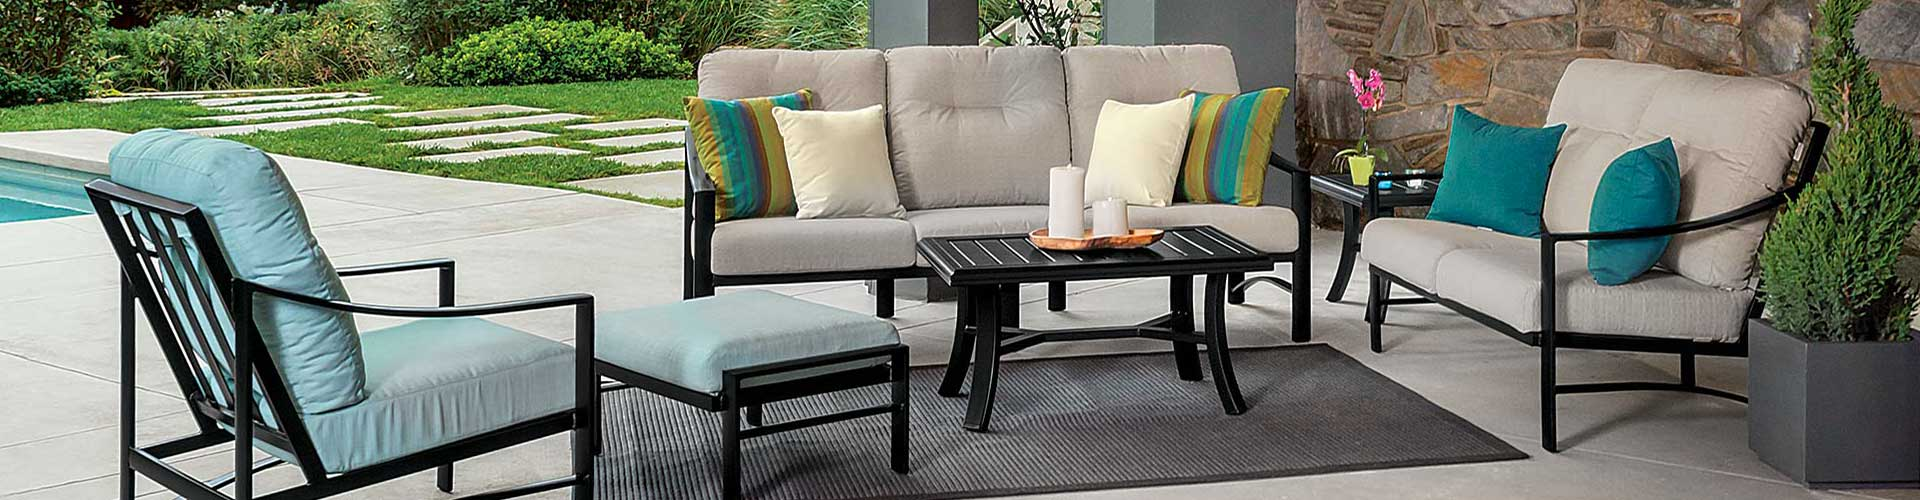 rocker transmotion rectangular padded riverwoods blog x banchetto chicago sling installaion shoreline umb in assembly il chair relocation furniture installation wicker kd patio delivery tropitone swivel of dining